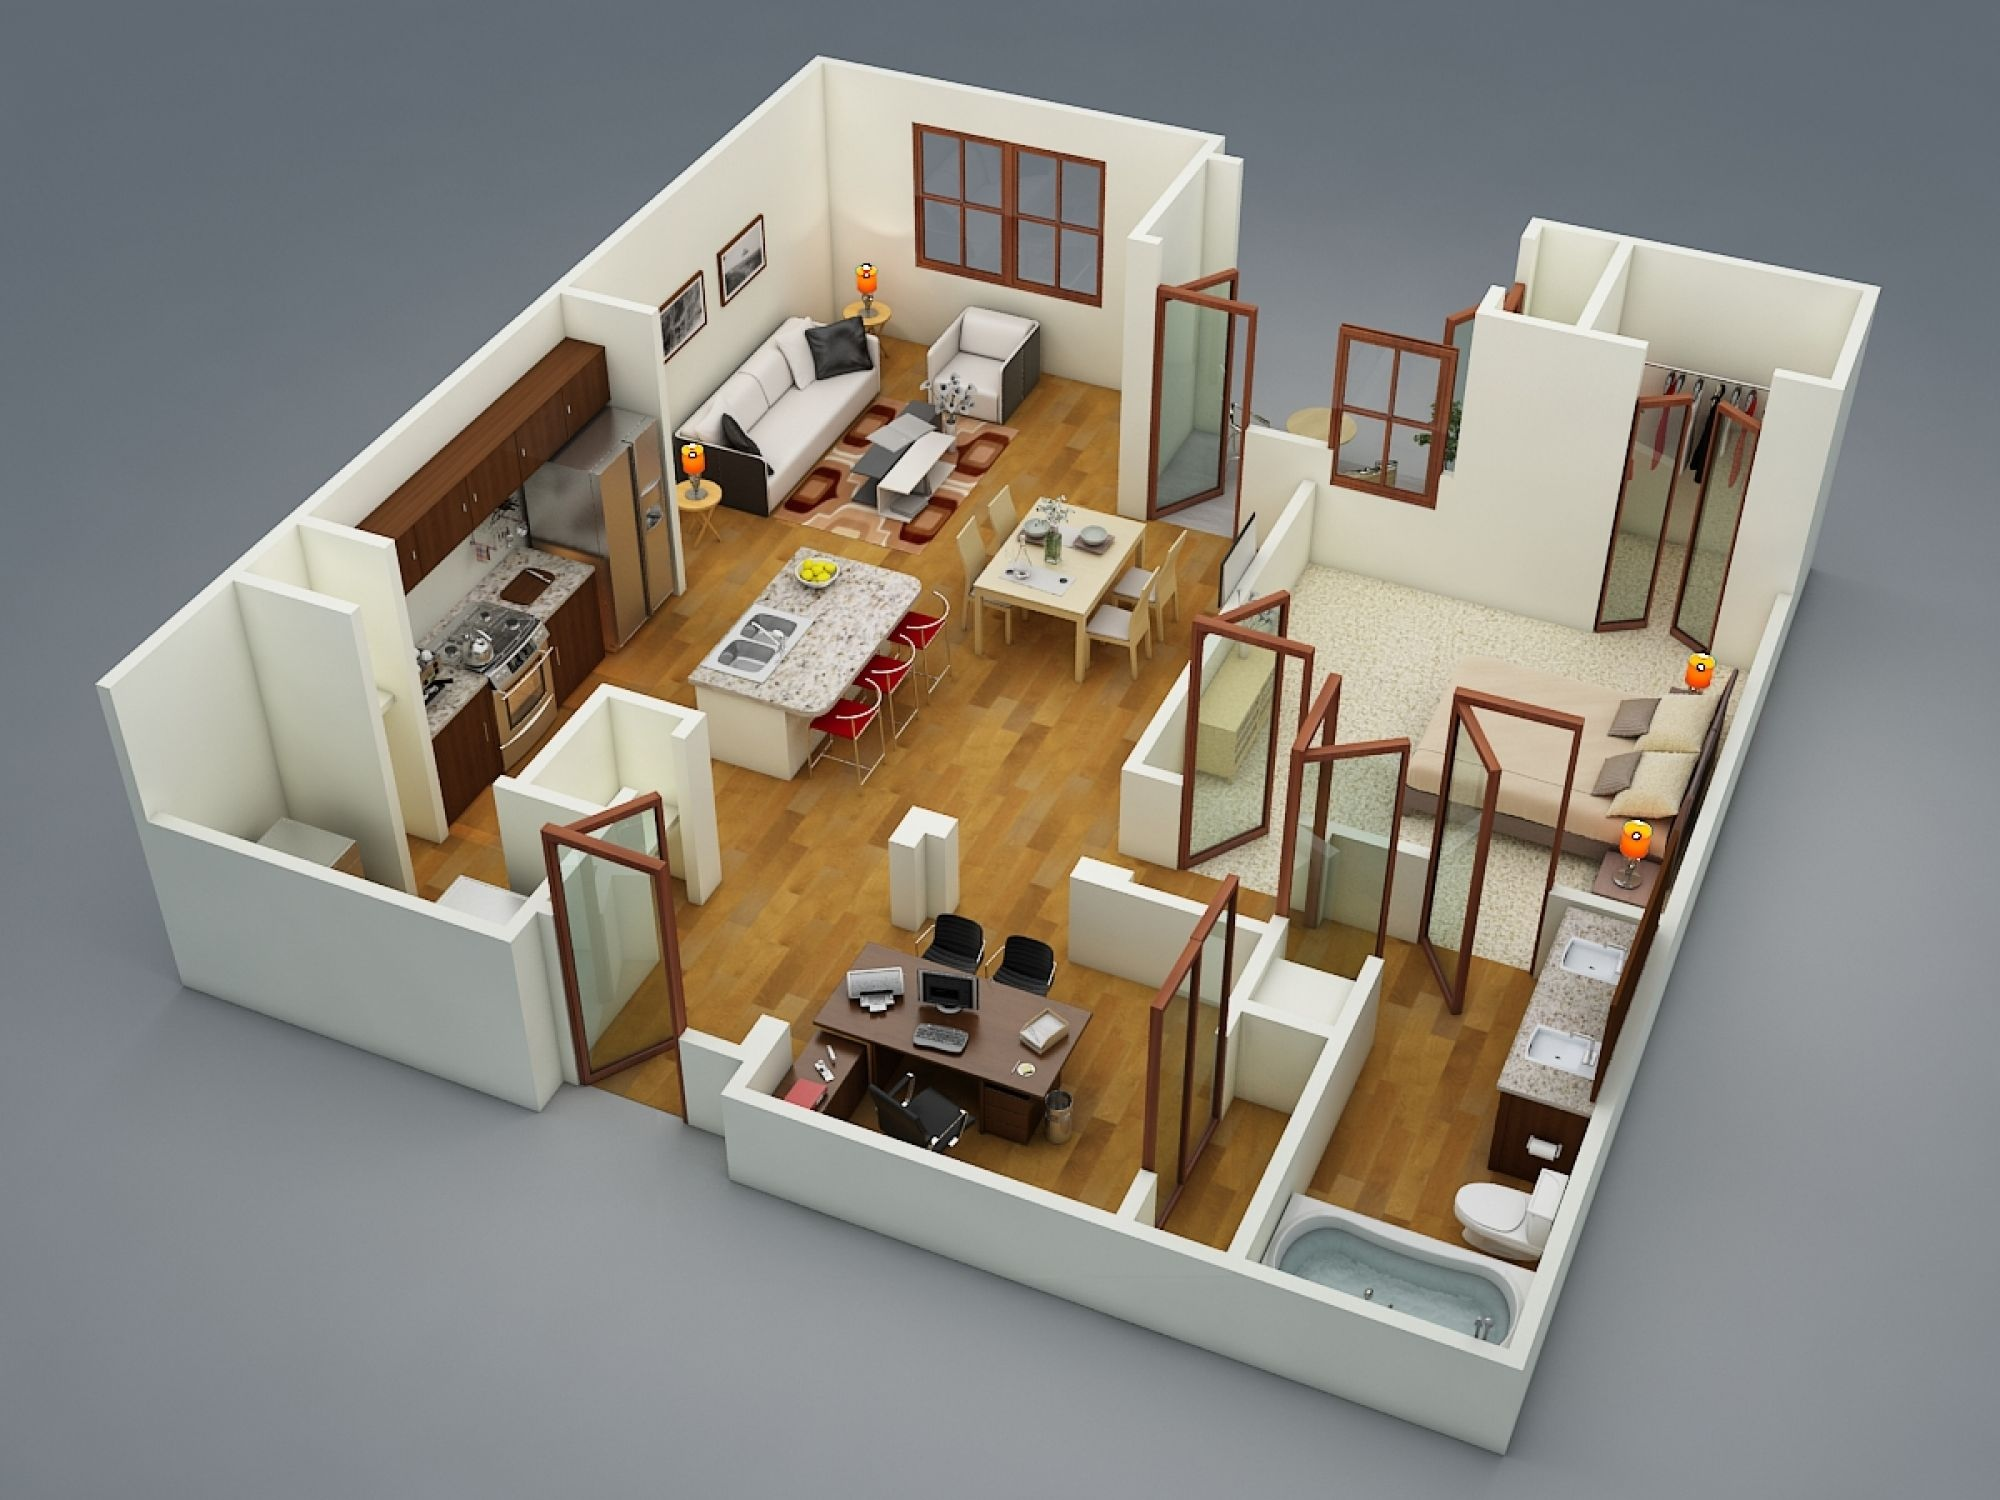 Apartment house plan for Young Professional